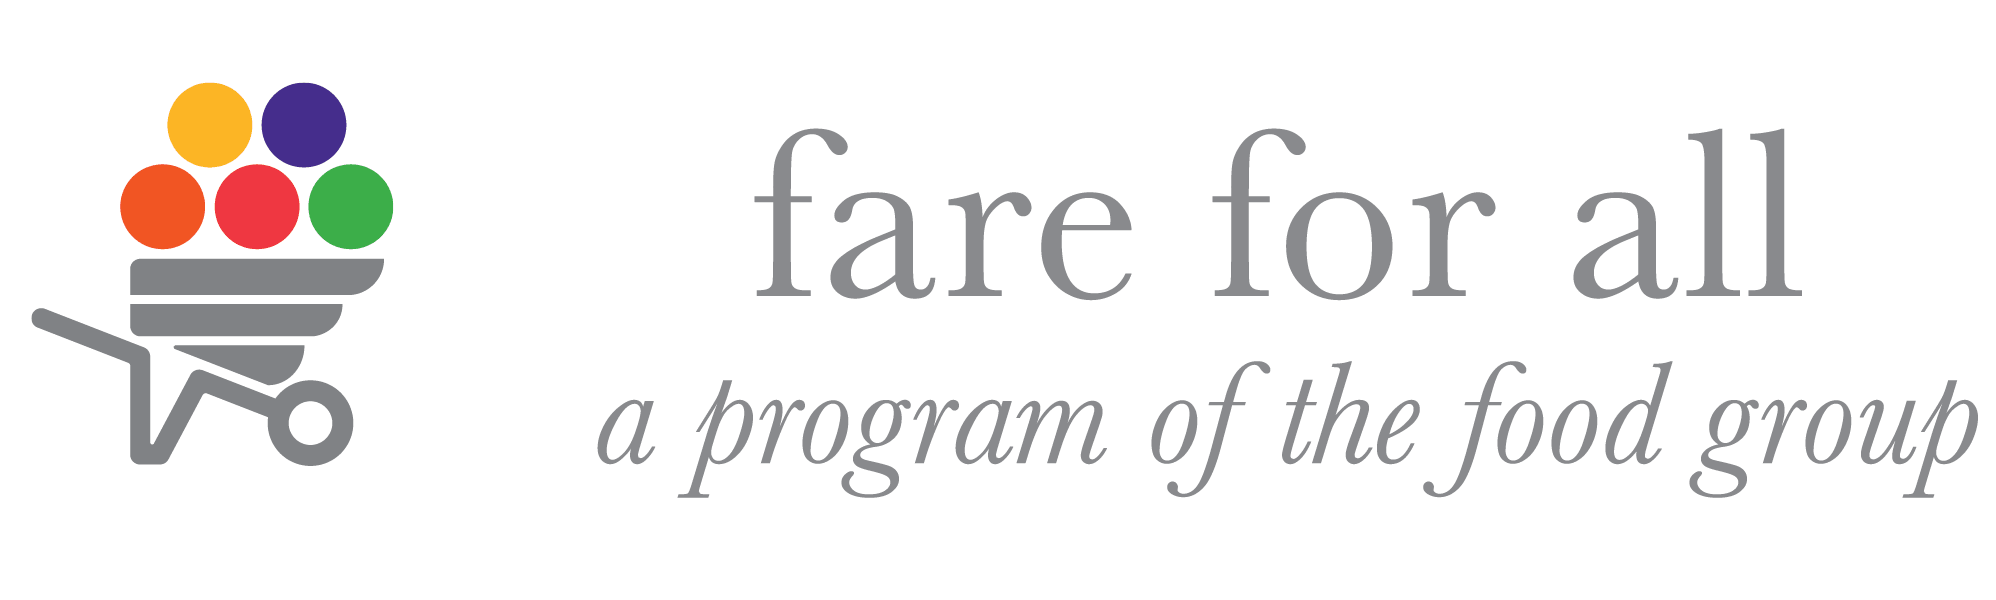 fare for all logo Opens in new window